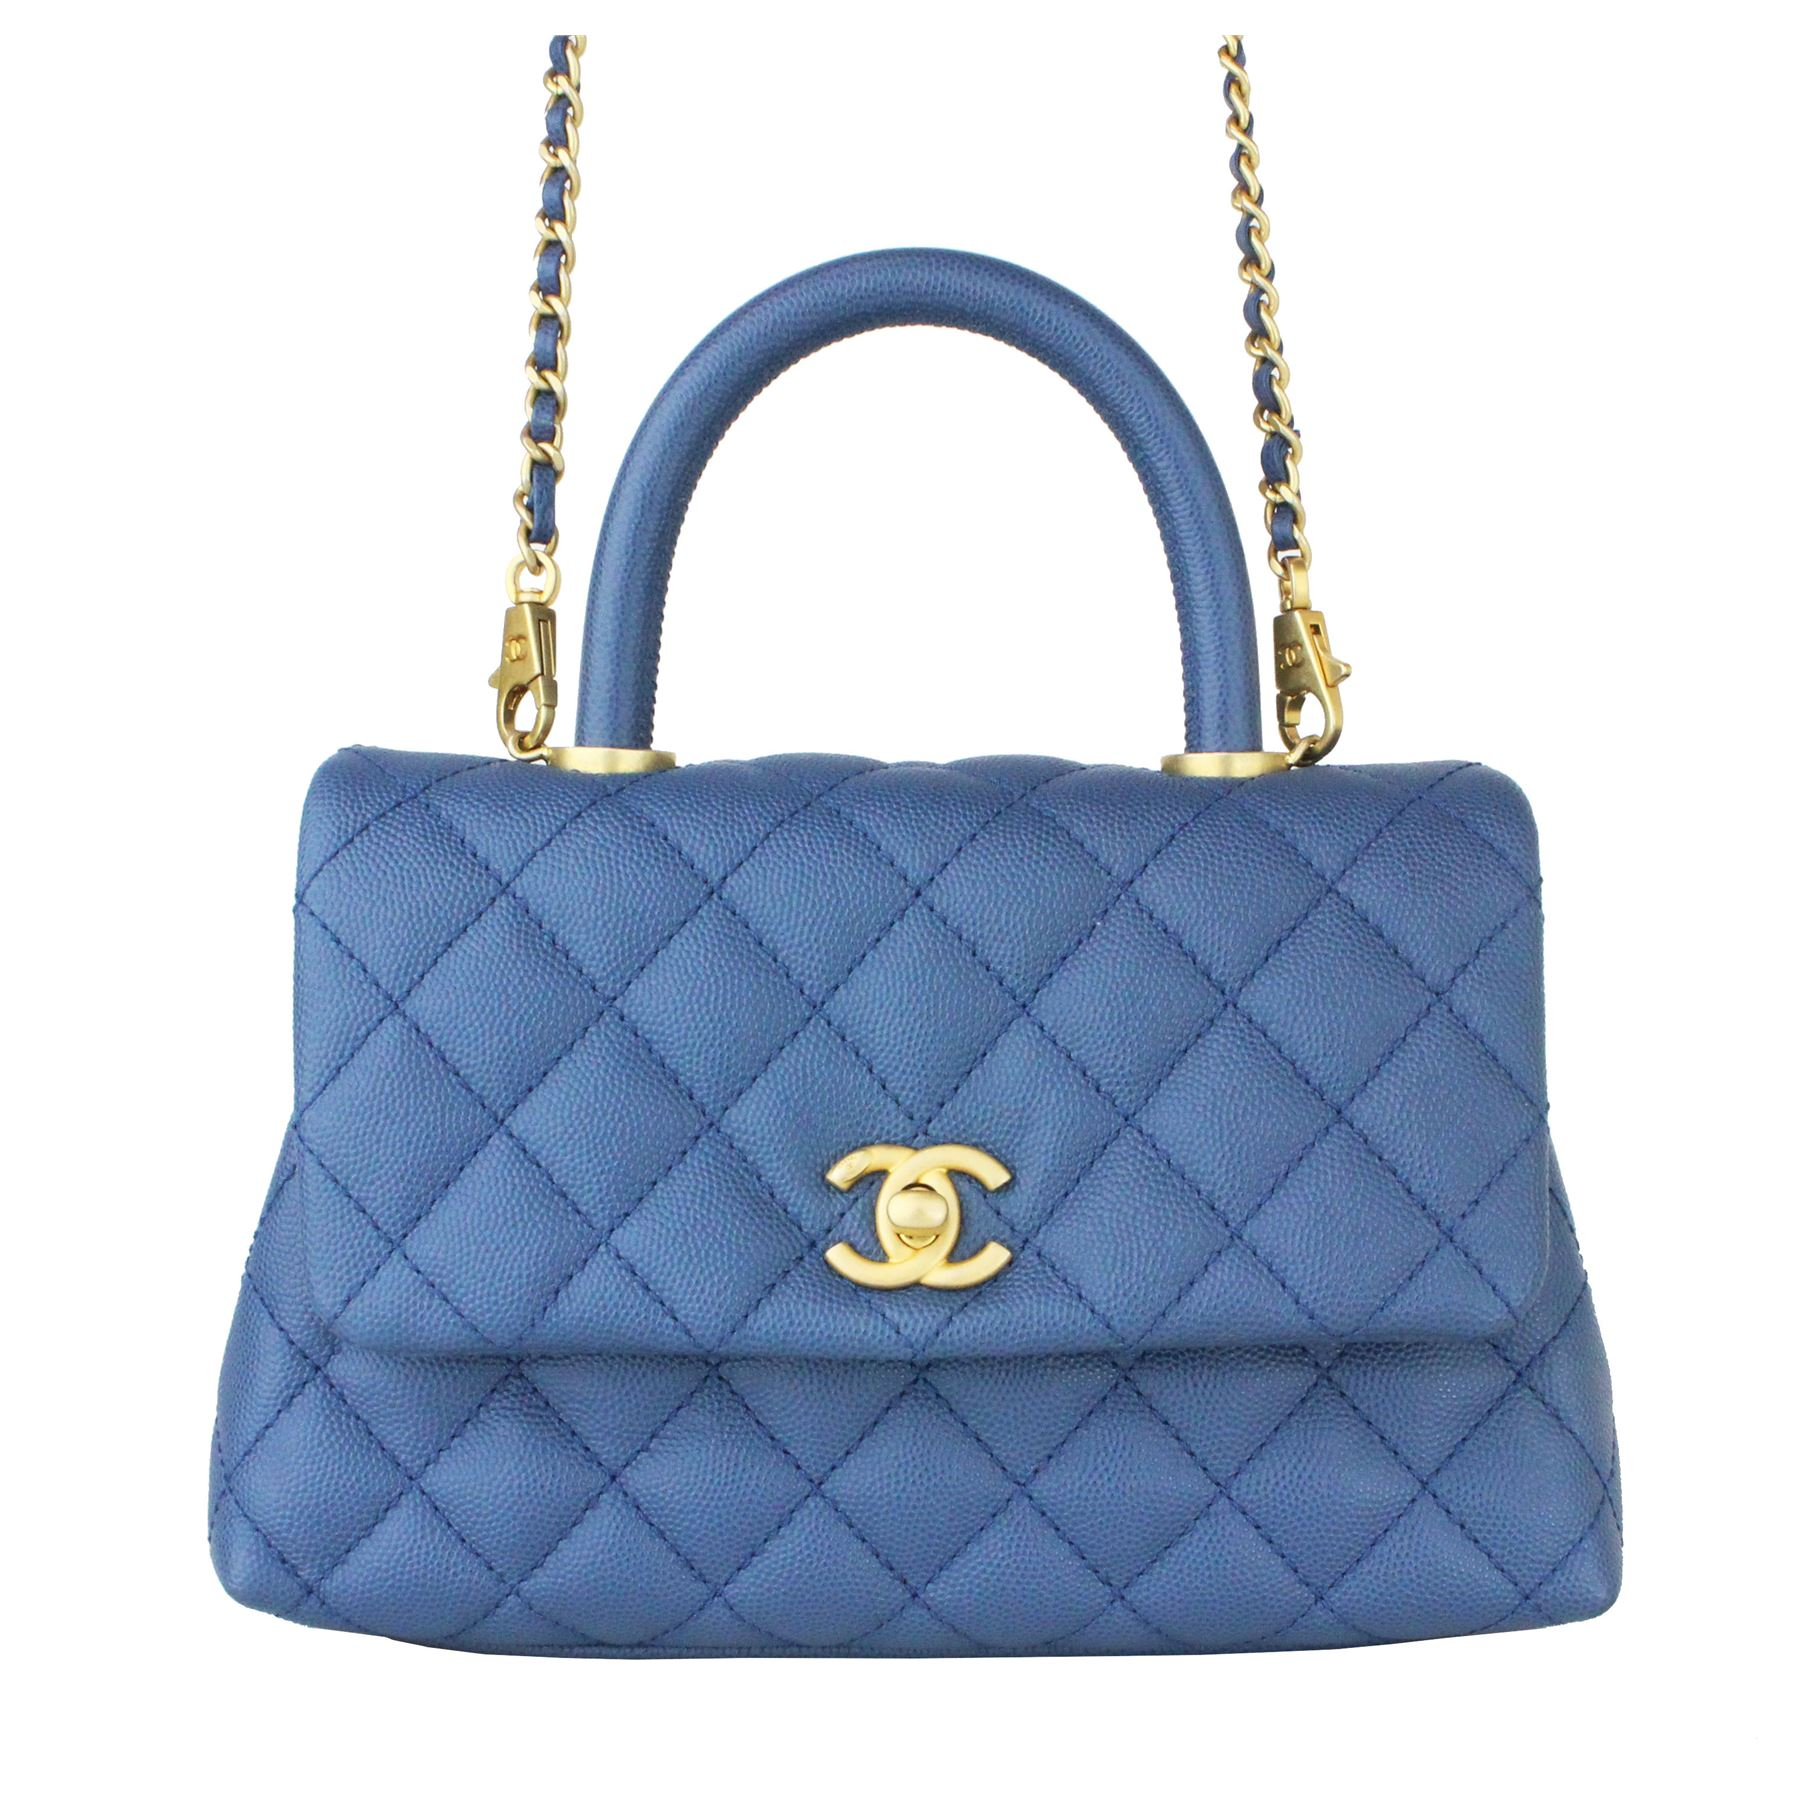 2b30df8a5d0d Image 1 : CHANEL Caviar Quilted Mini Coco Handle Flap Blue ...